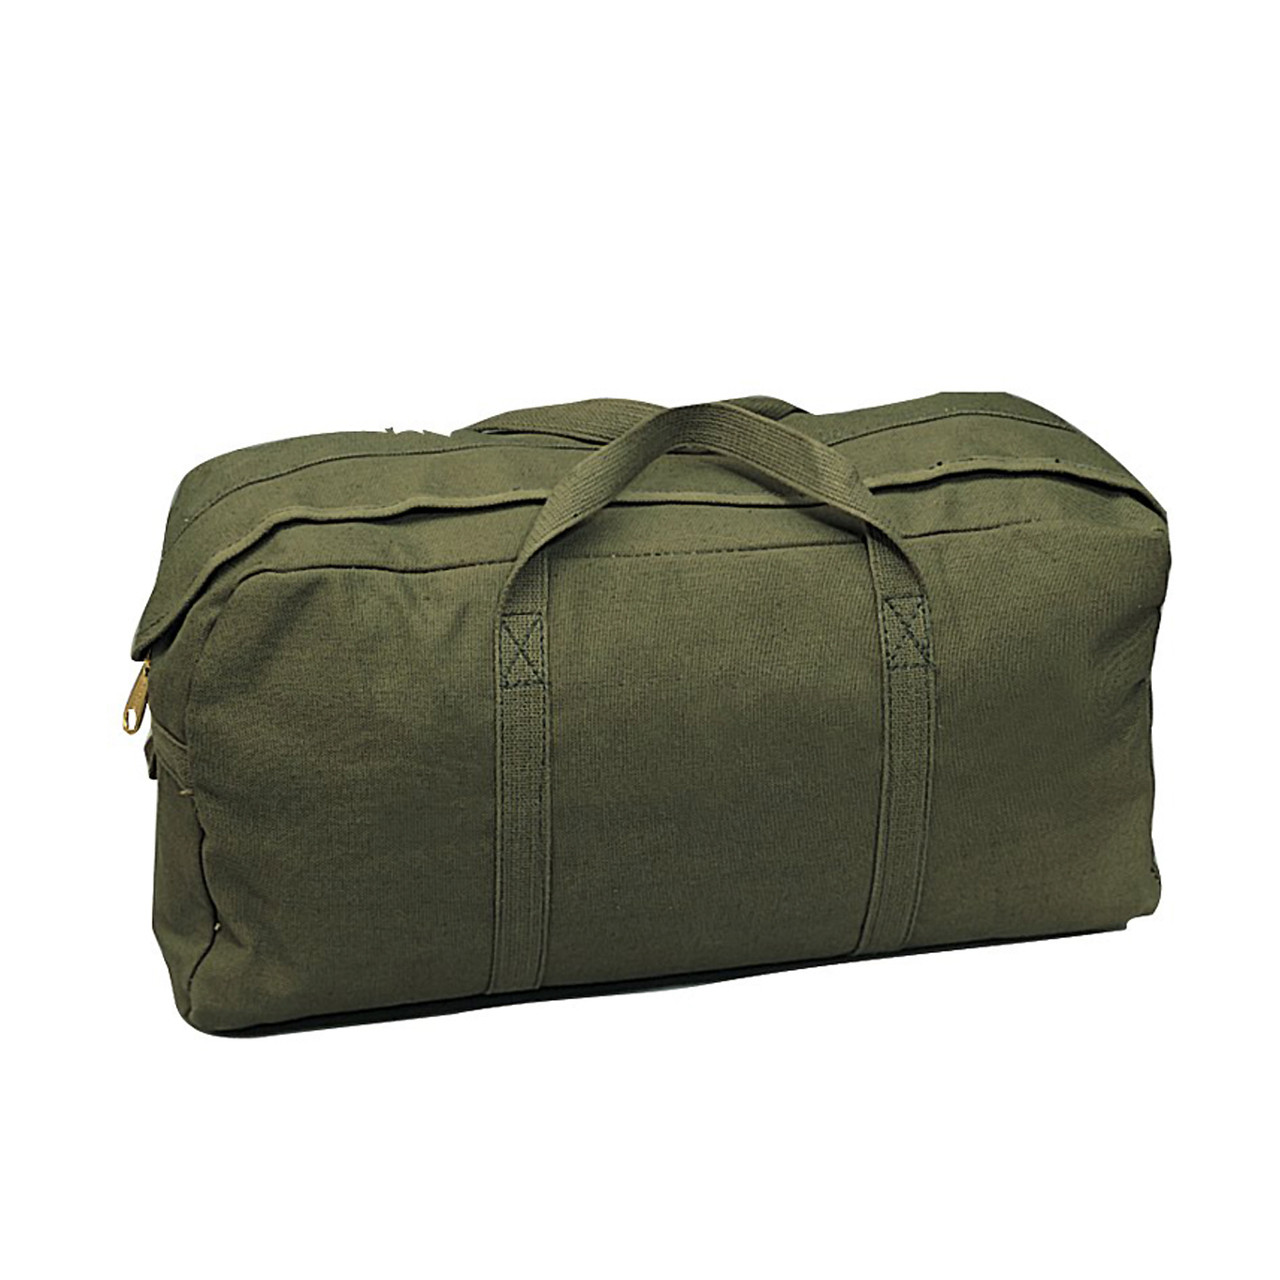 Shop Olive Drab Canvas Military Tanker Tool Bag - Fatigues Army Navy Gear  Bags